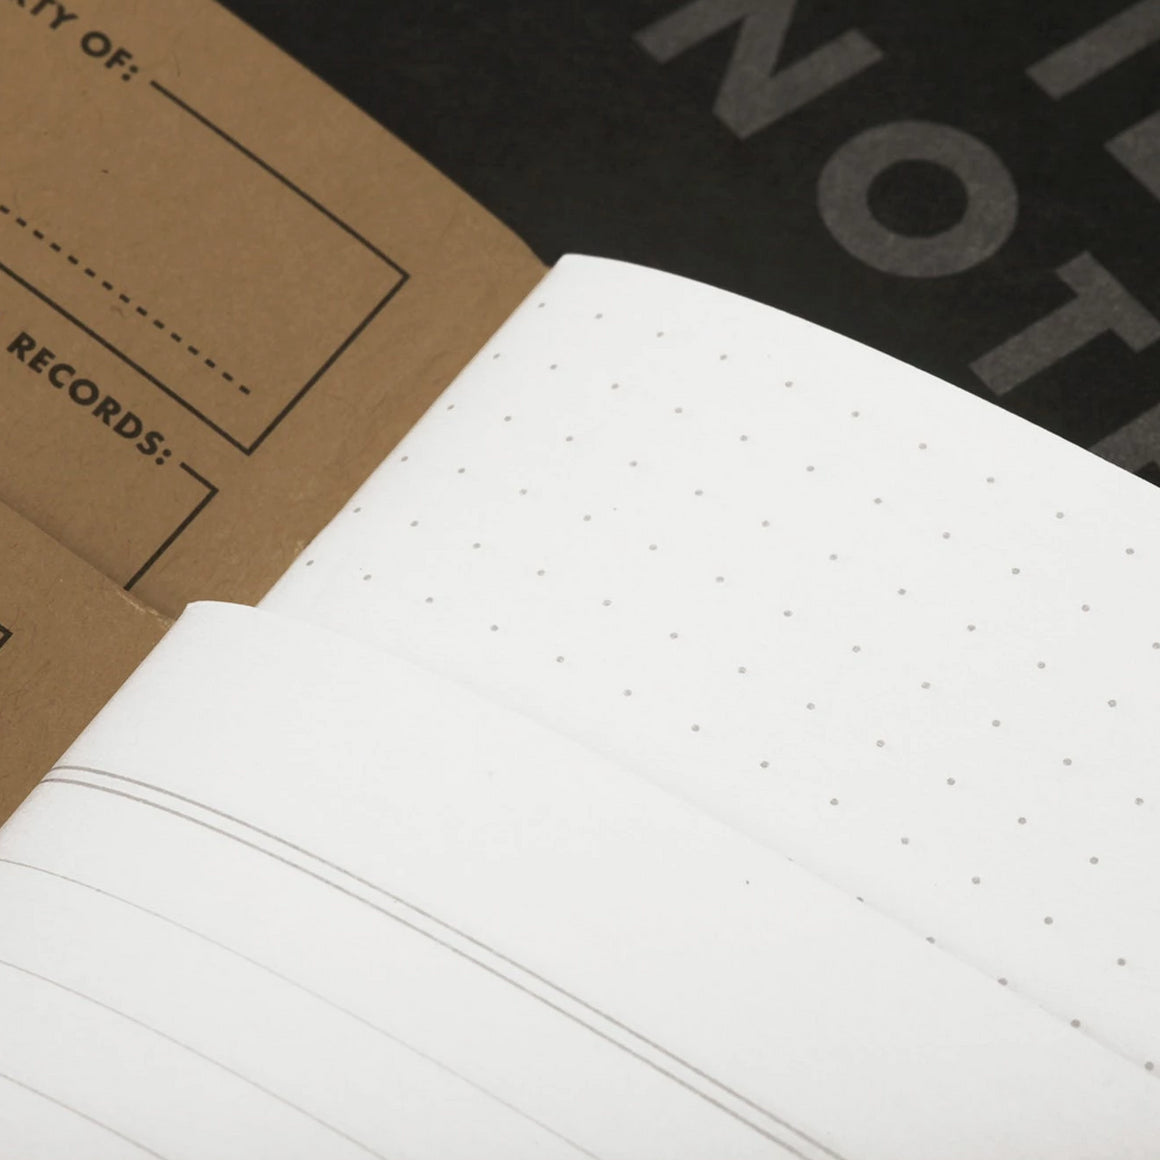 Field Notes Pitch Black Notebooks (3-Pack)